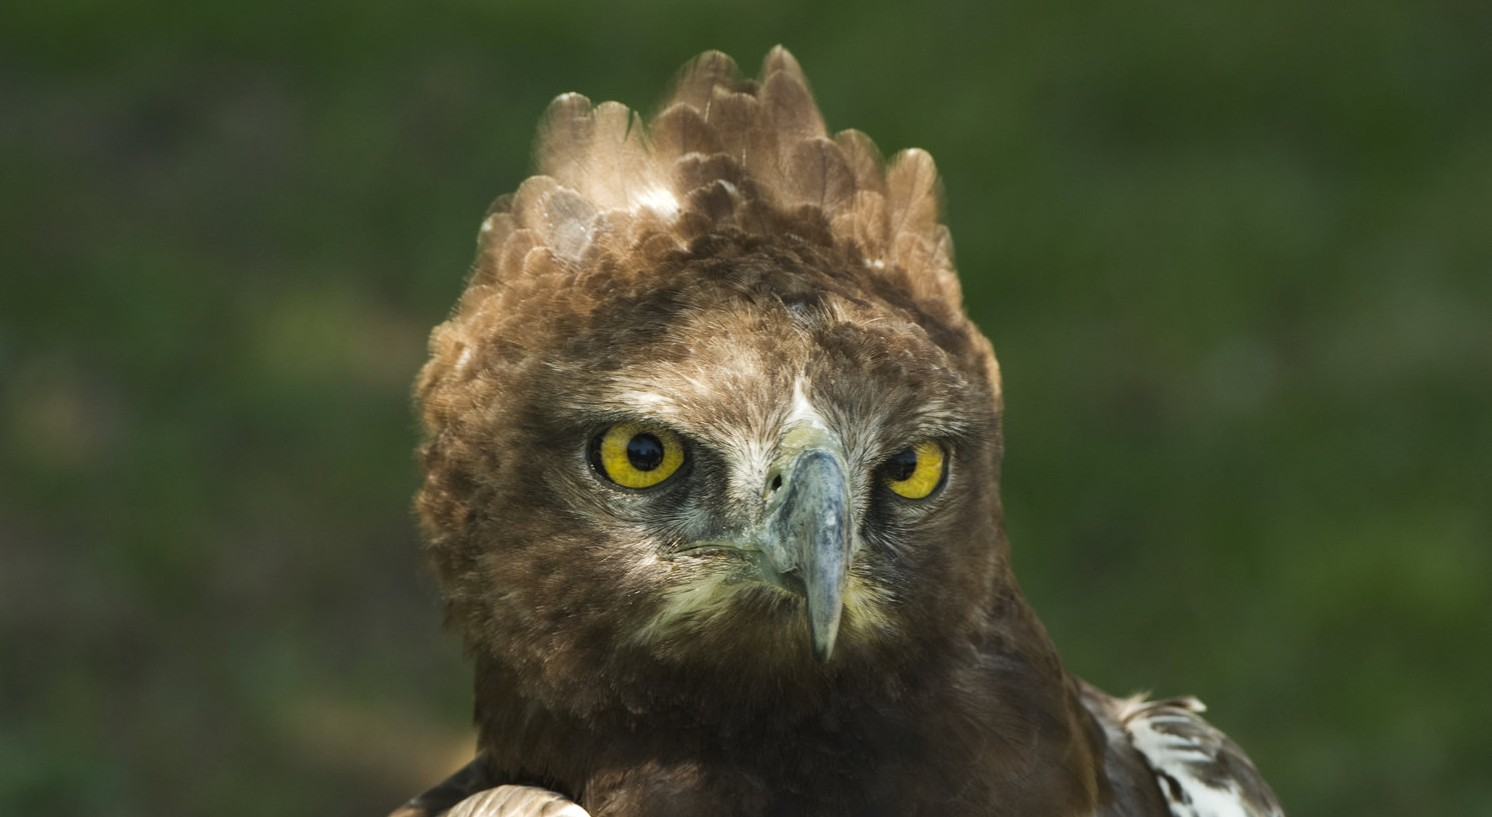 Zimbabwe-Martial-Eagle-by-Simon-Bellingham-e1439549846828